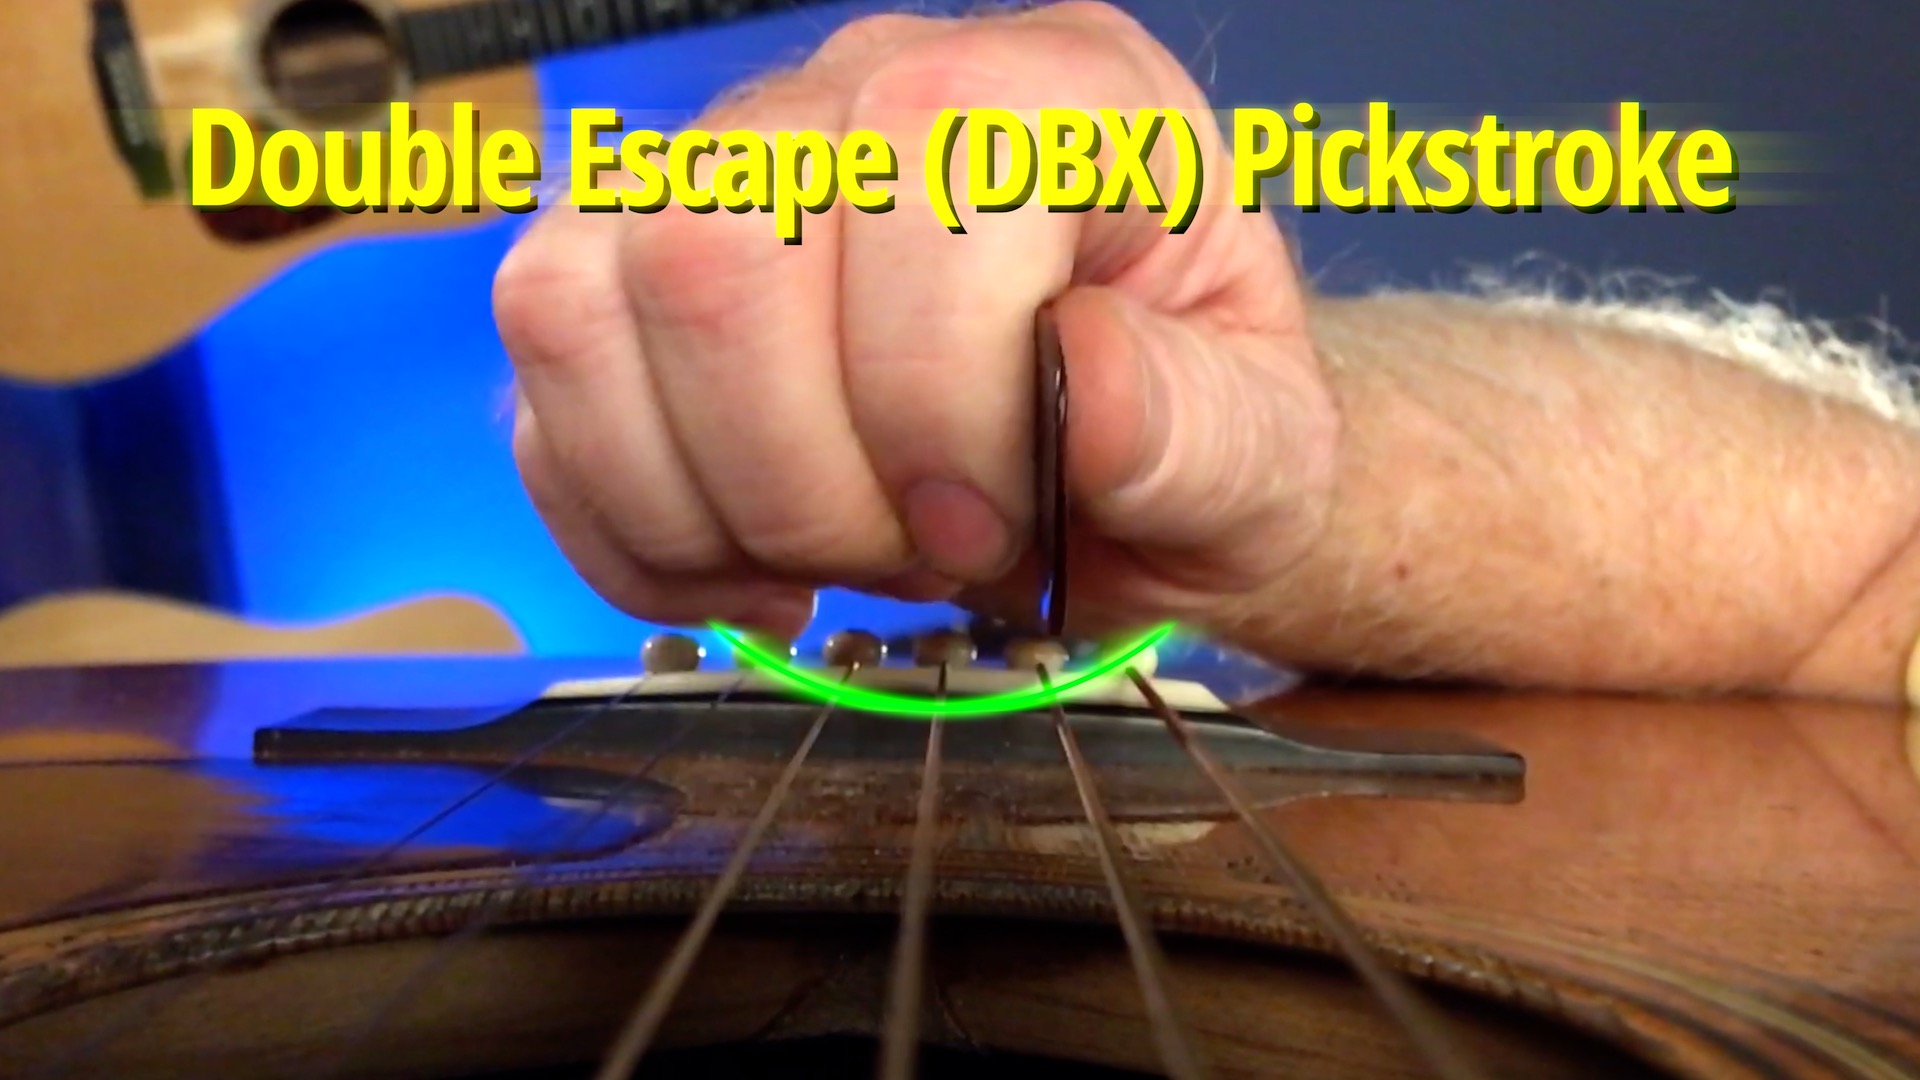 Image of David Grier's DBX pickstroke with curved motion path overal